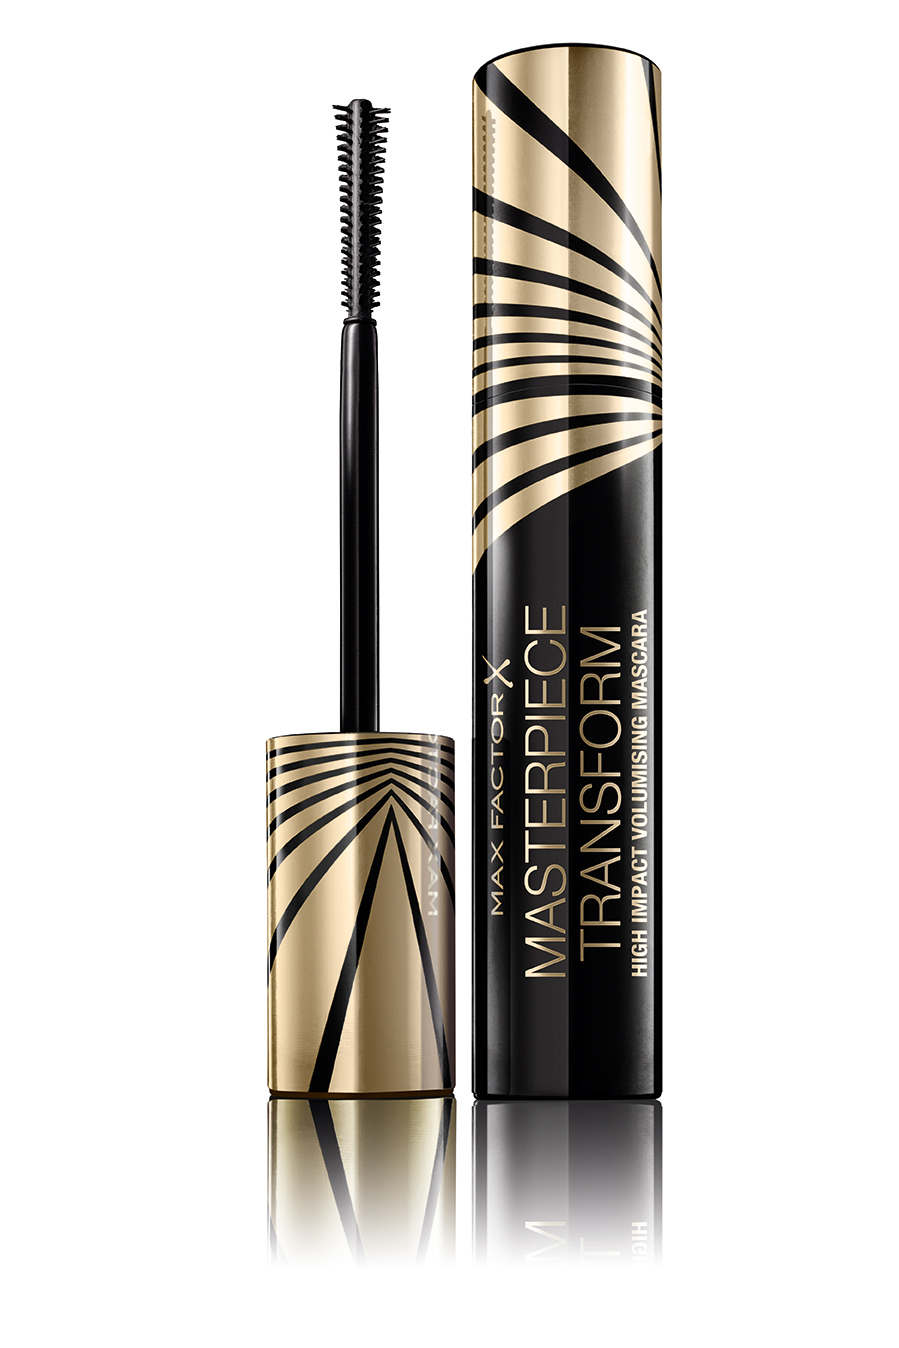 Max Factor_Masterpiece Transform High Impact Volumising Mascara pack